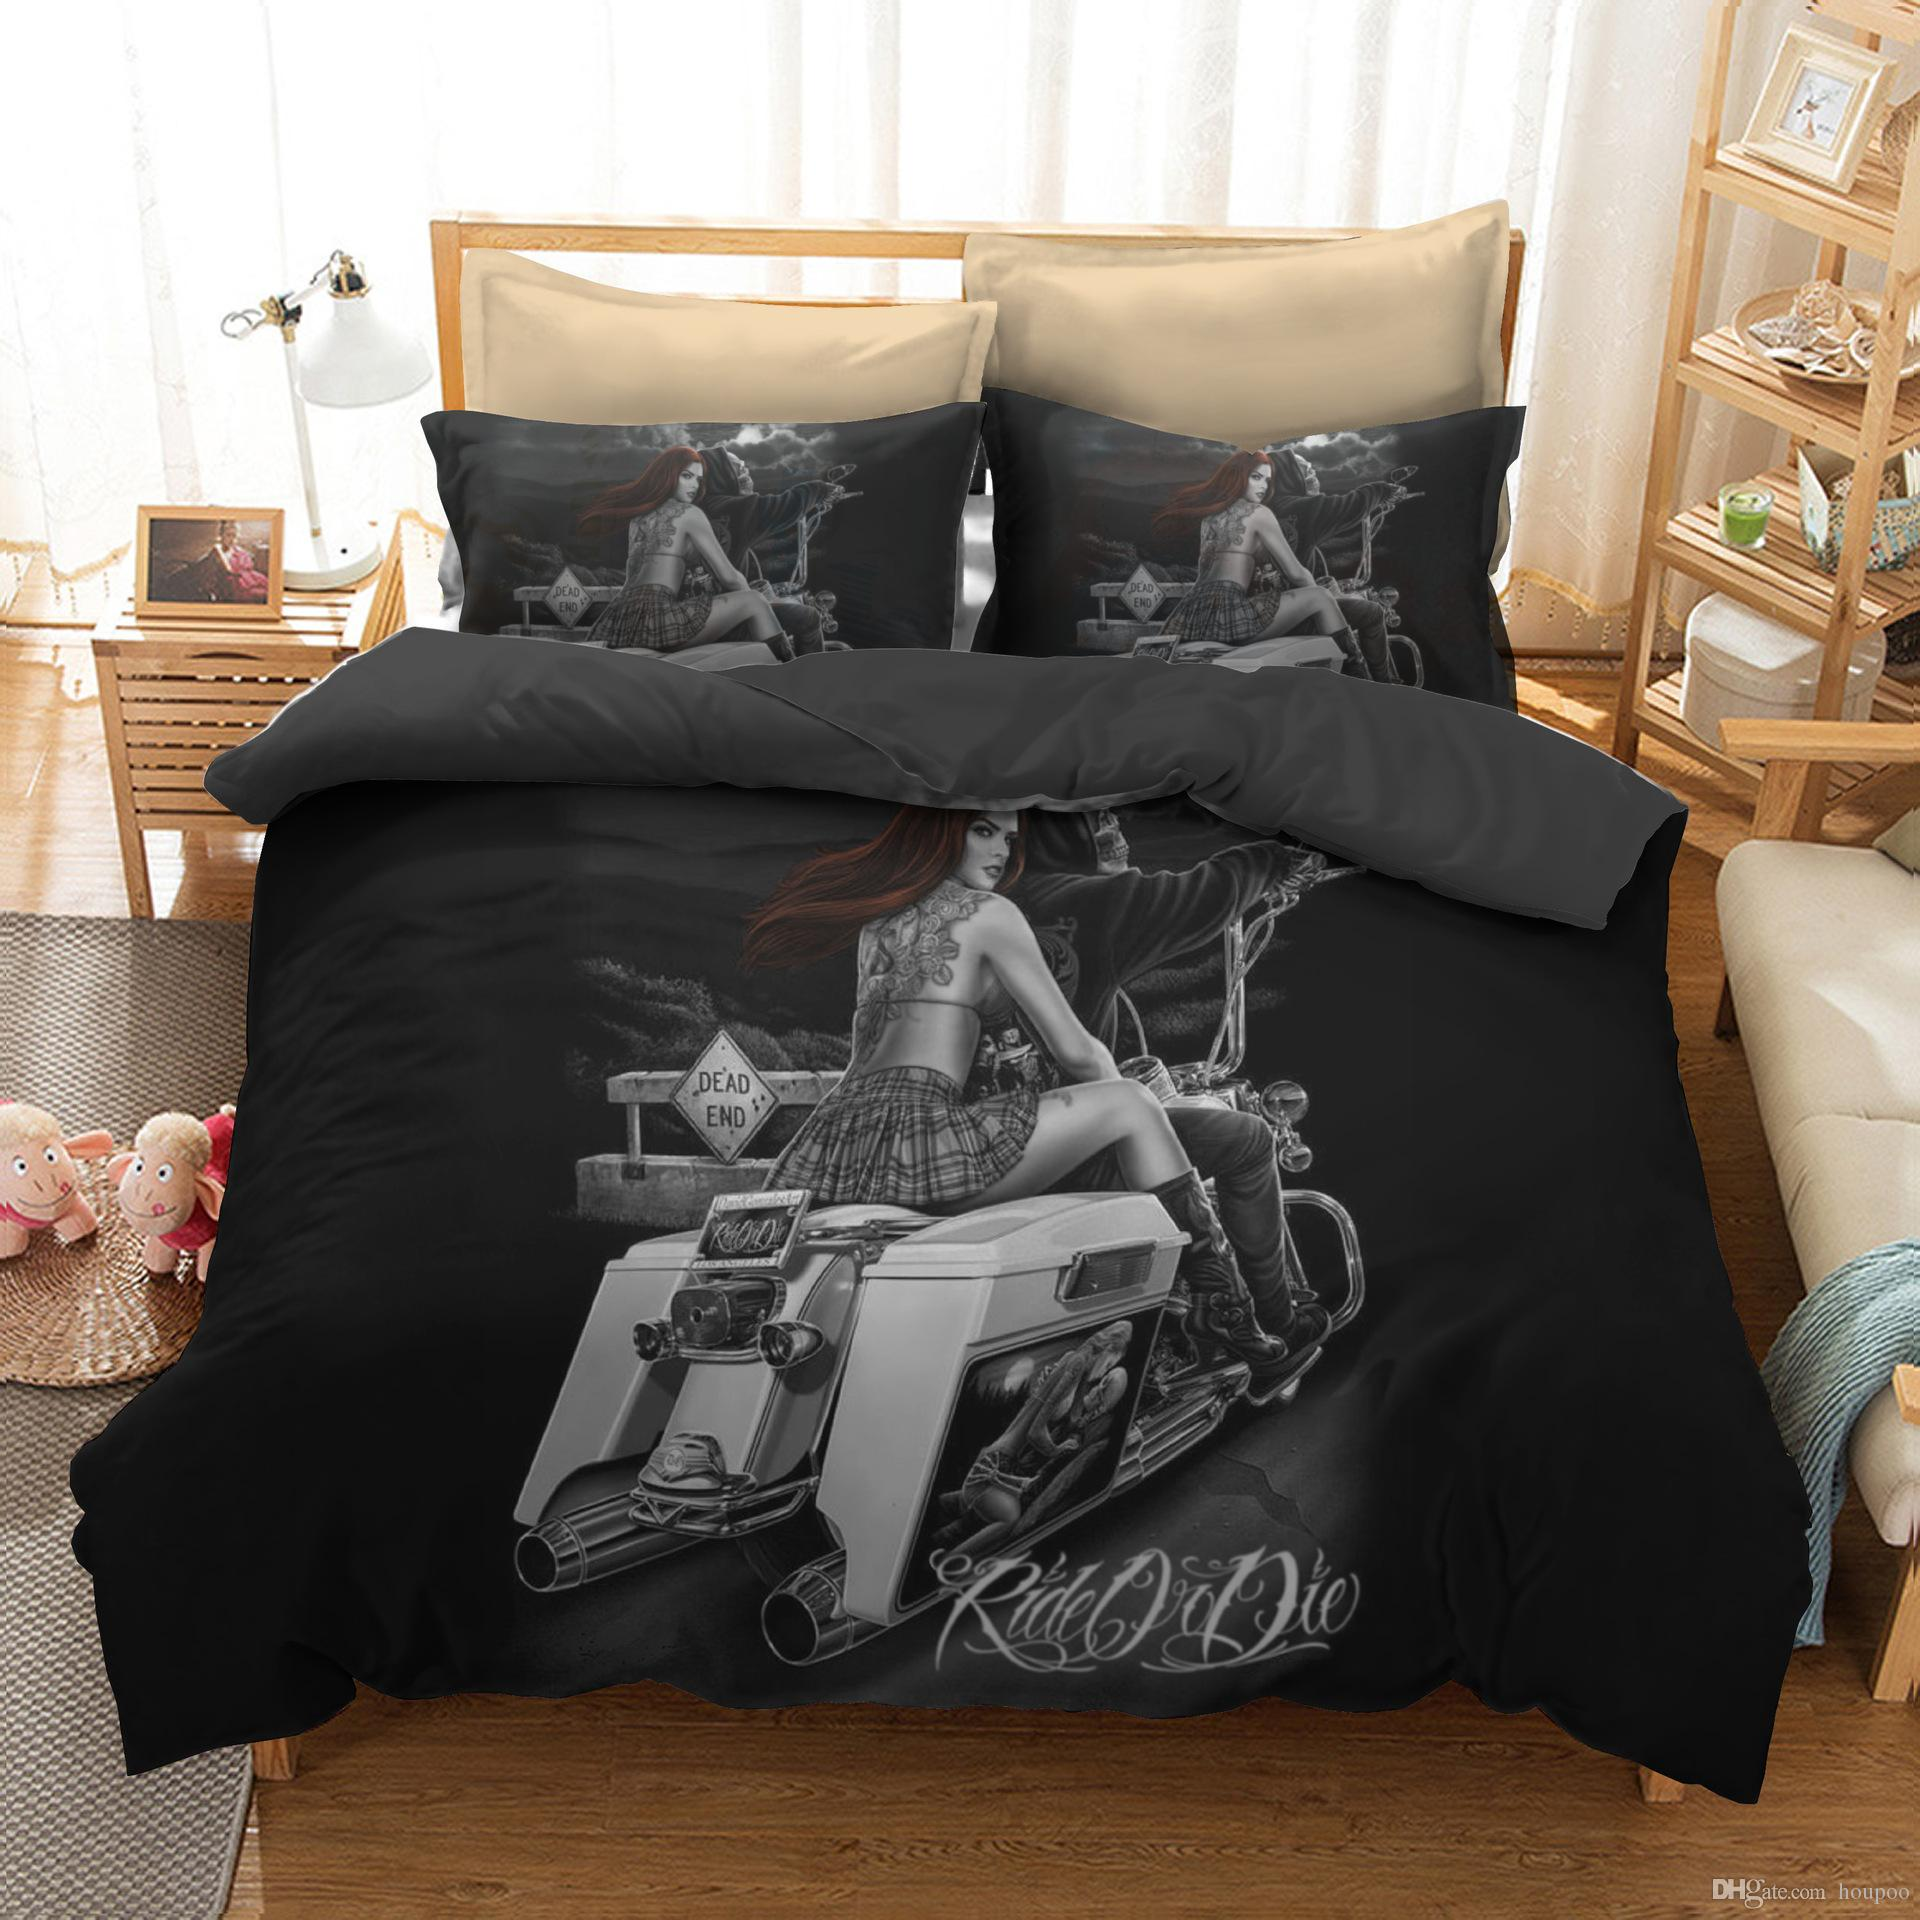 . Wholesale 6 Styles Skull Beauty 3D Printed Twin King Size Bedding Sets Bed  Sheets Queen Bedding Sets King Size Comforter Set